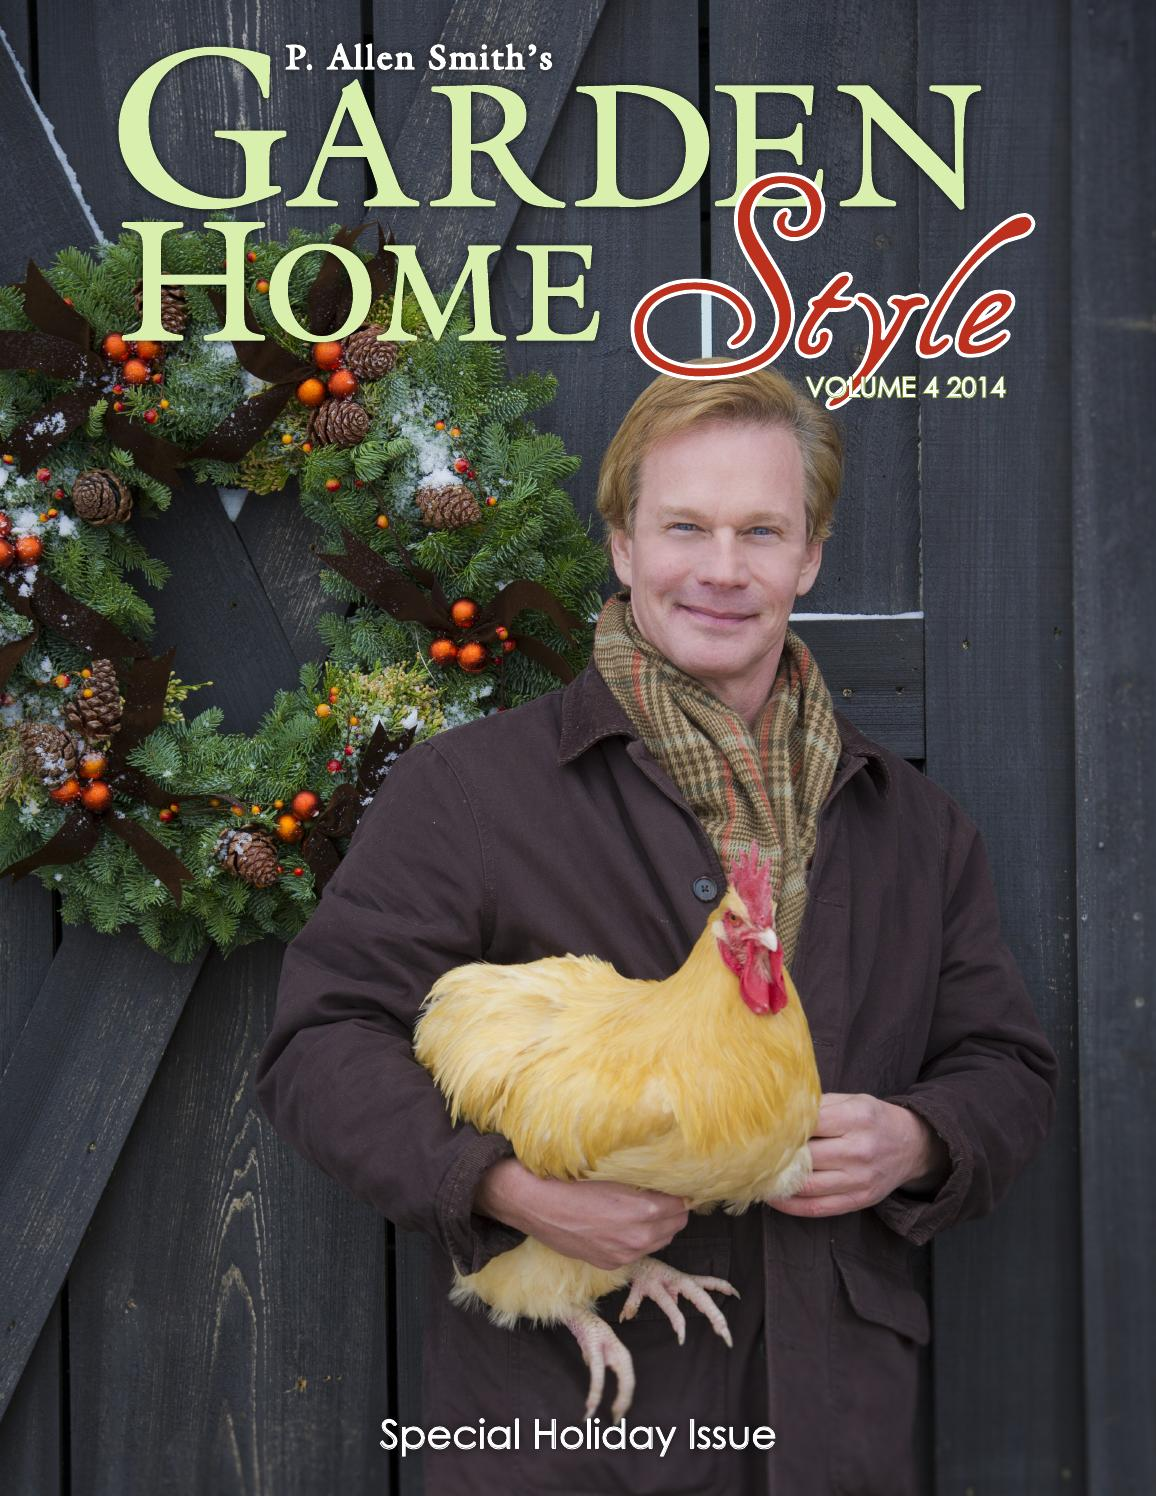 rtt 1 allen smith Paul allen smith is a television host, garden designer, conservationist, and lifestyle expert he is the host of three television programs p allen smith's garden home and p allen smith's.